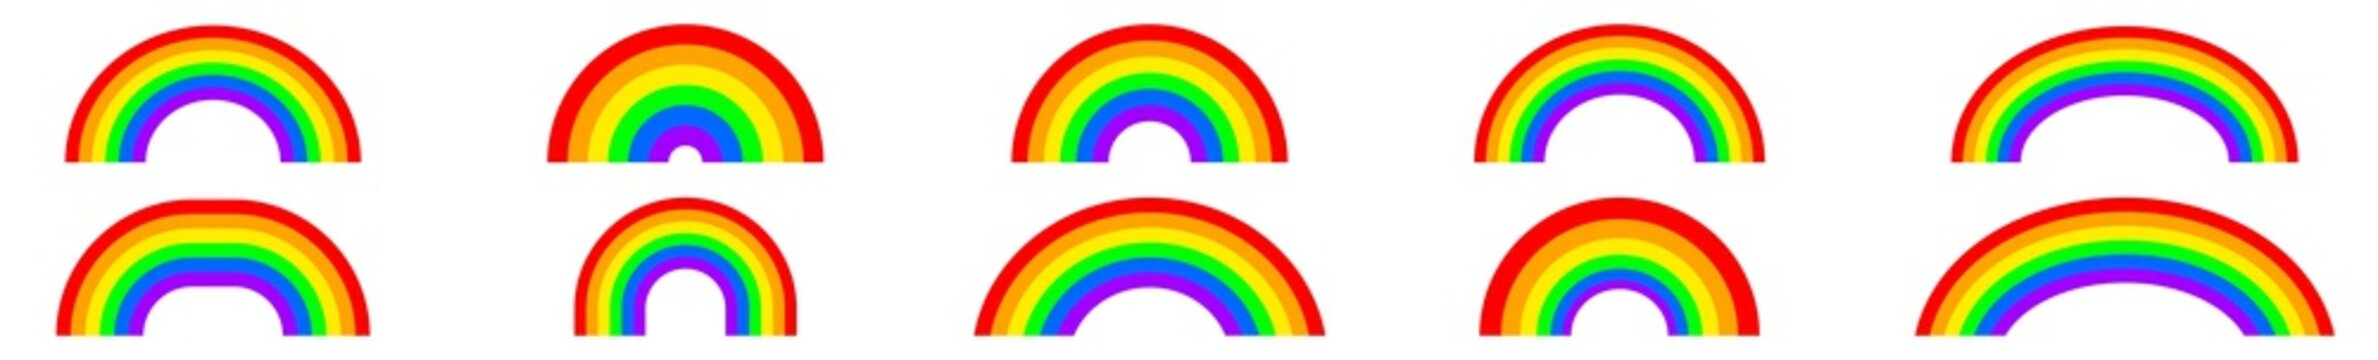 Rainbow Icon Colors   Rainbows   Peace Symbol   Weather Logo   Happy Sign   Isolated   Variations